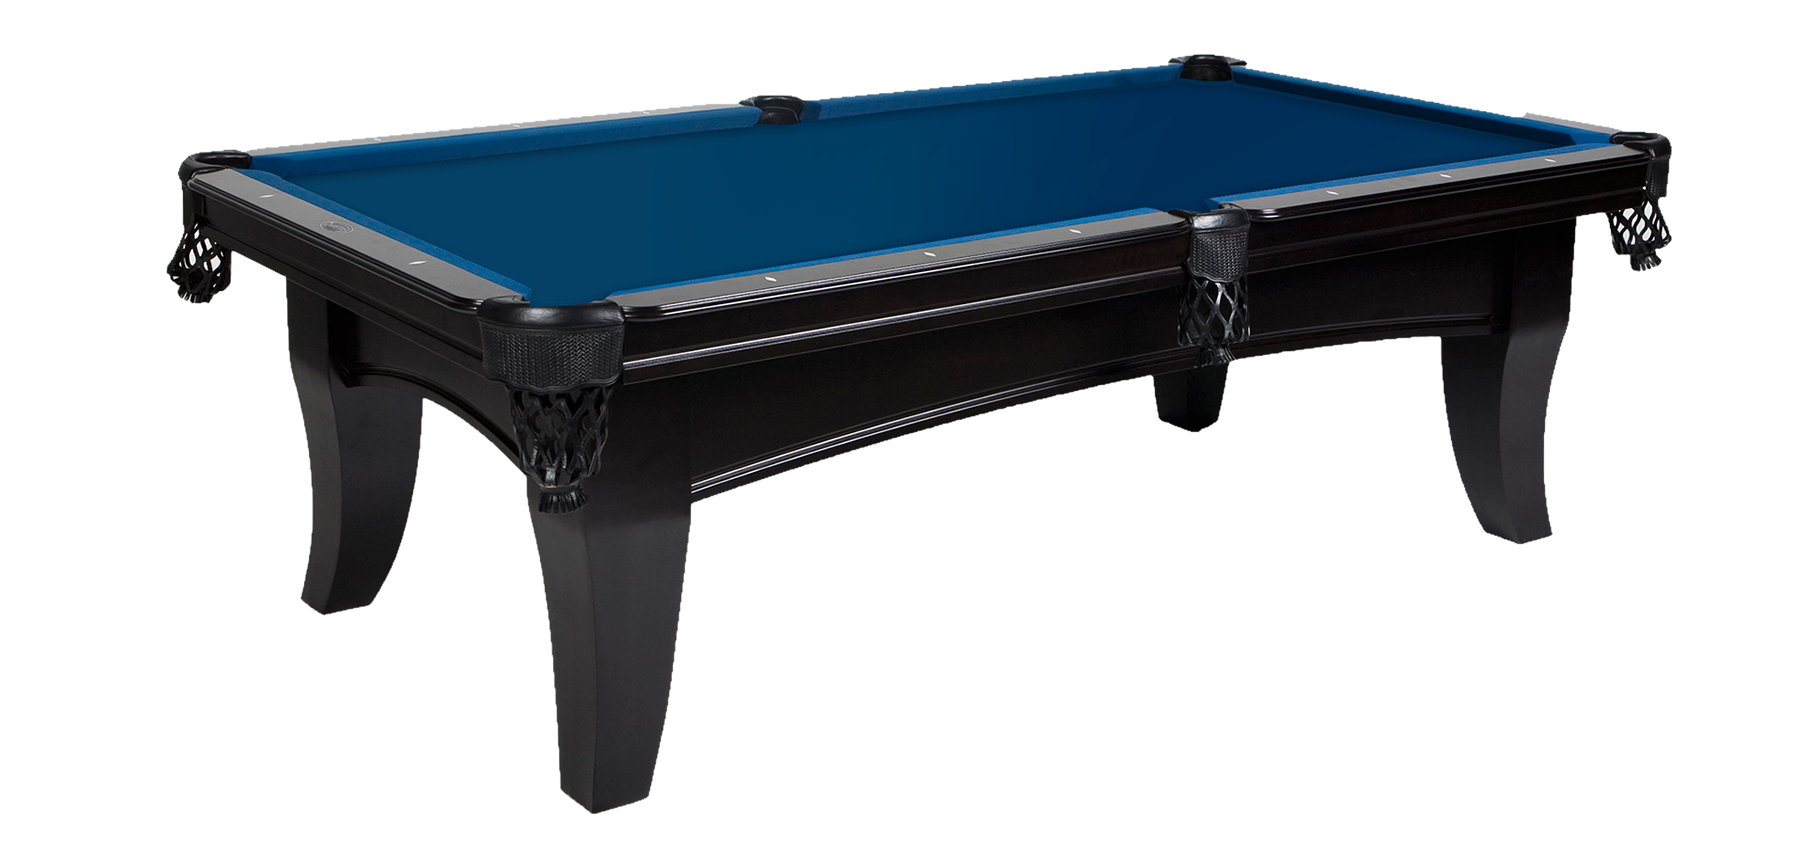 Olhausen Blackhawk Pool Table Olhausen Billiards - Billiards and Barstools Gallery - Pool Tables and ...